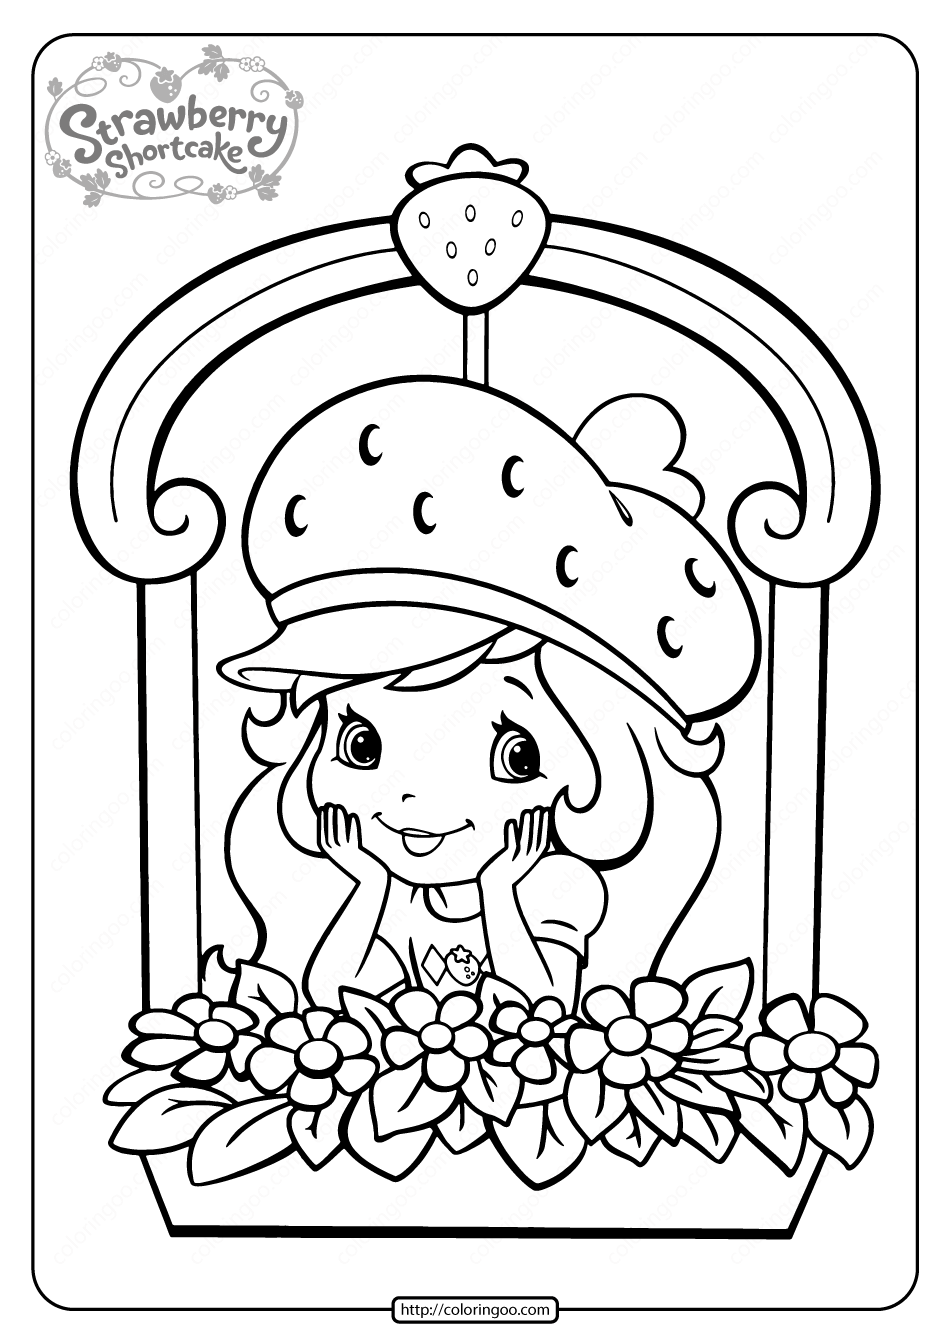 Free Printable Strawberry Shortcake Coloring Page 10